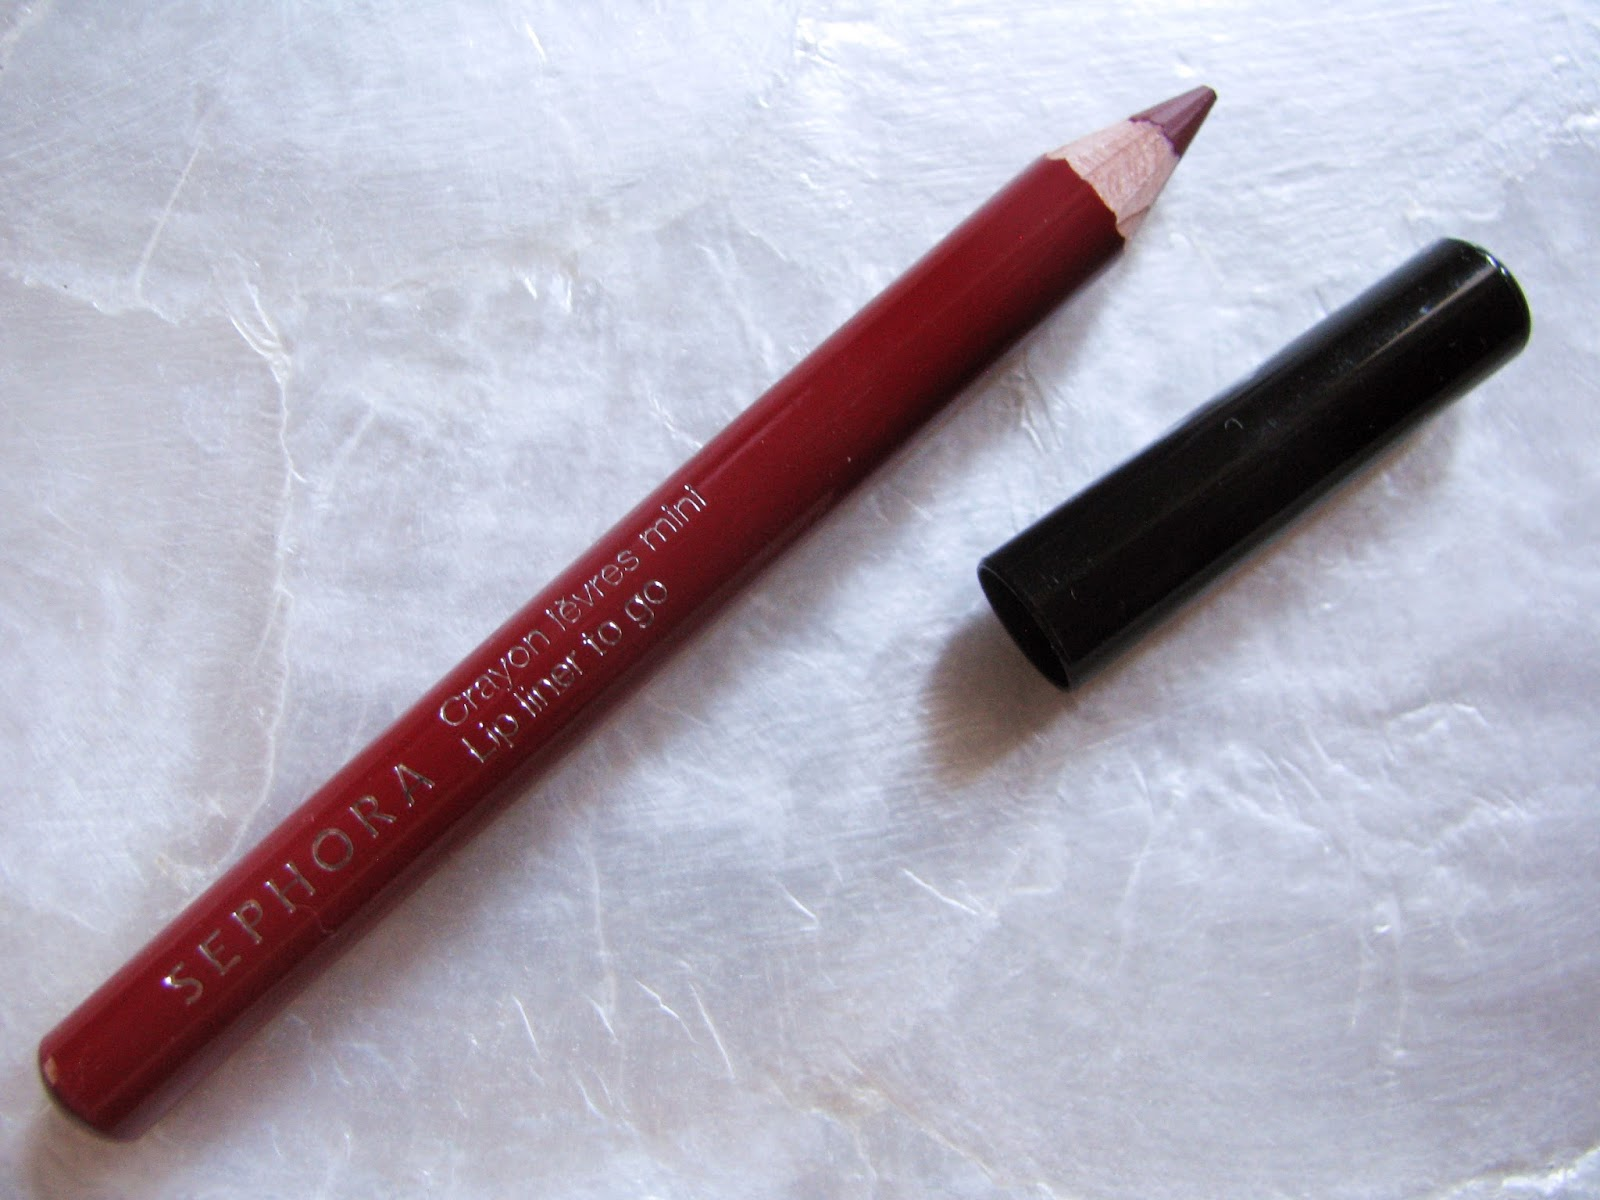 Sephora Lip Liner To Go in Ruby